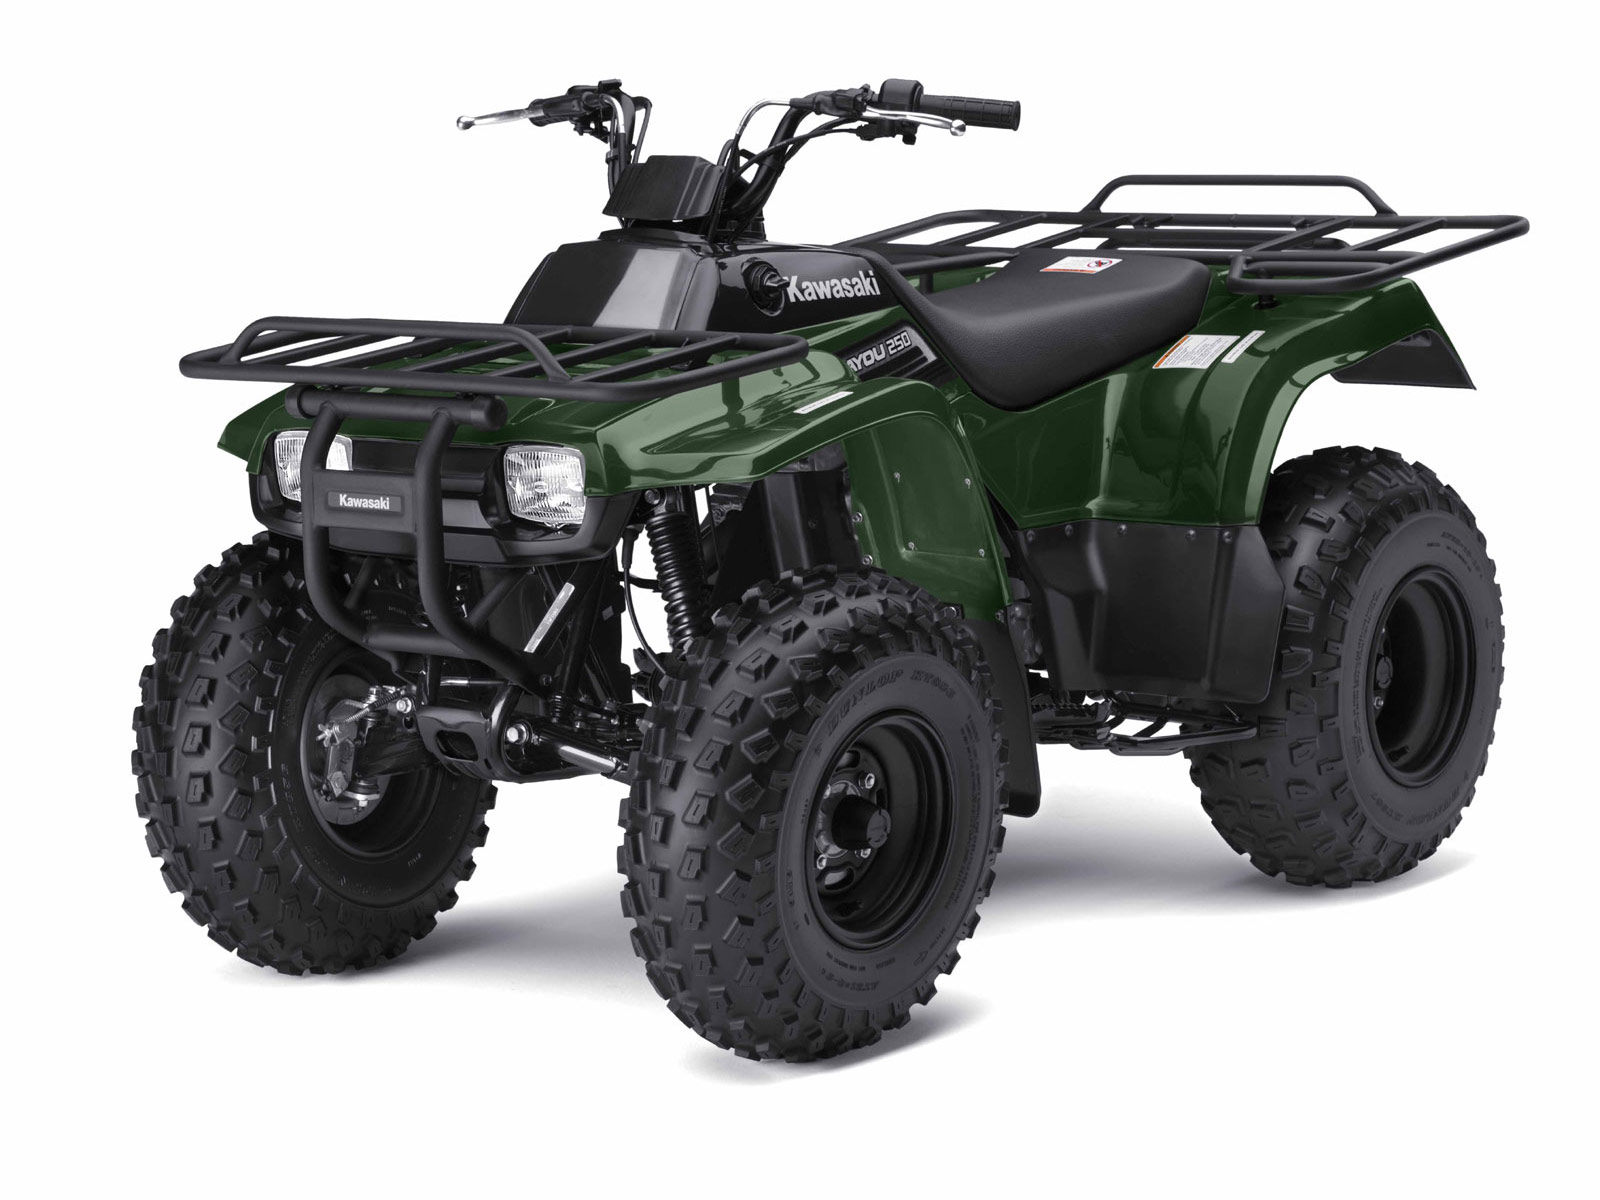 Wiring Diagrams For Kawasaki Prairie 300 Atv Control Diagram 4 Wheeler Images Gallery Suzuki King Quad Free Engine Image